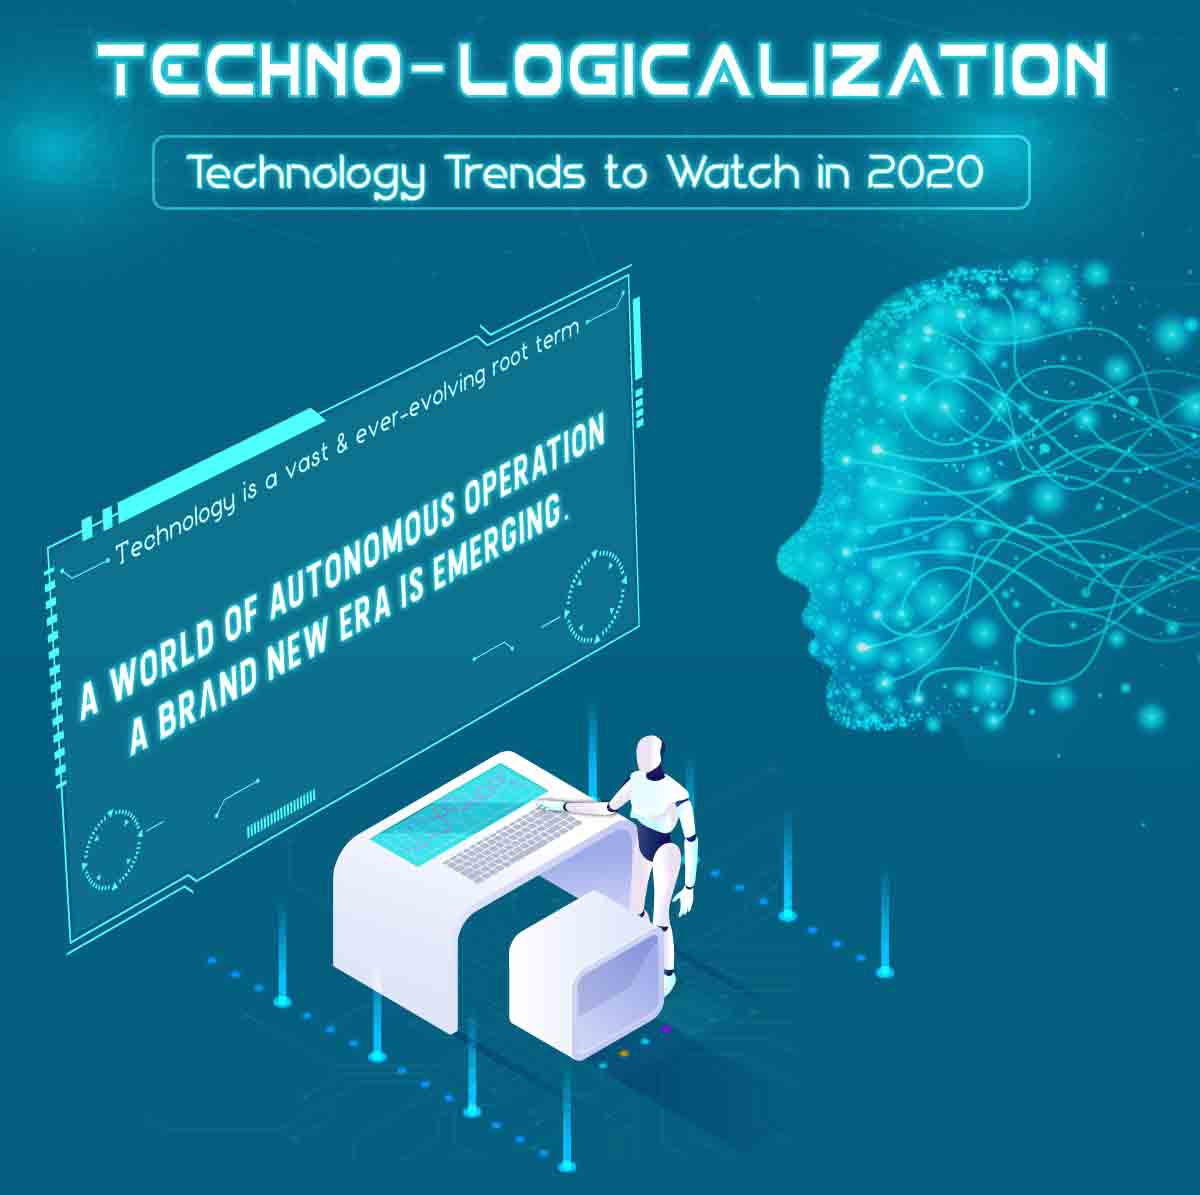 Technologicalization – Technology Trends to Watch in 2020